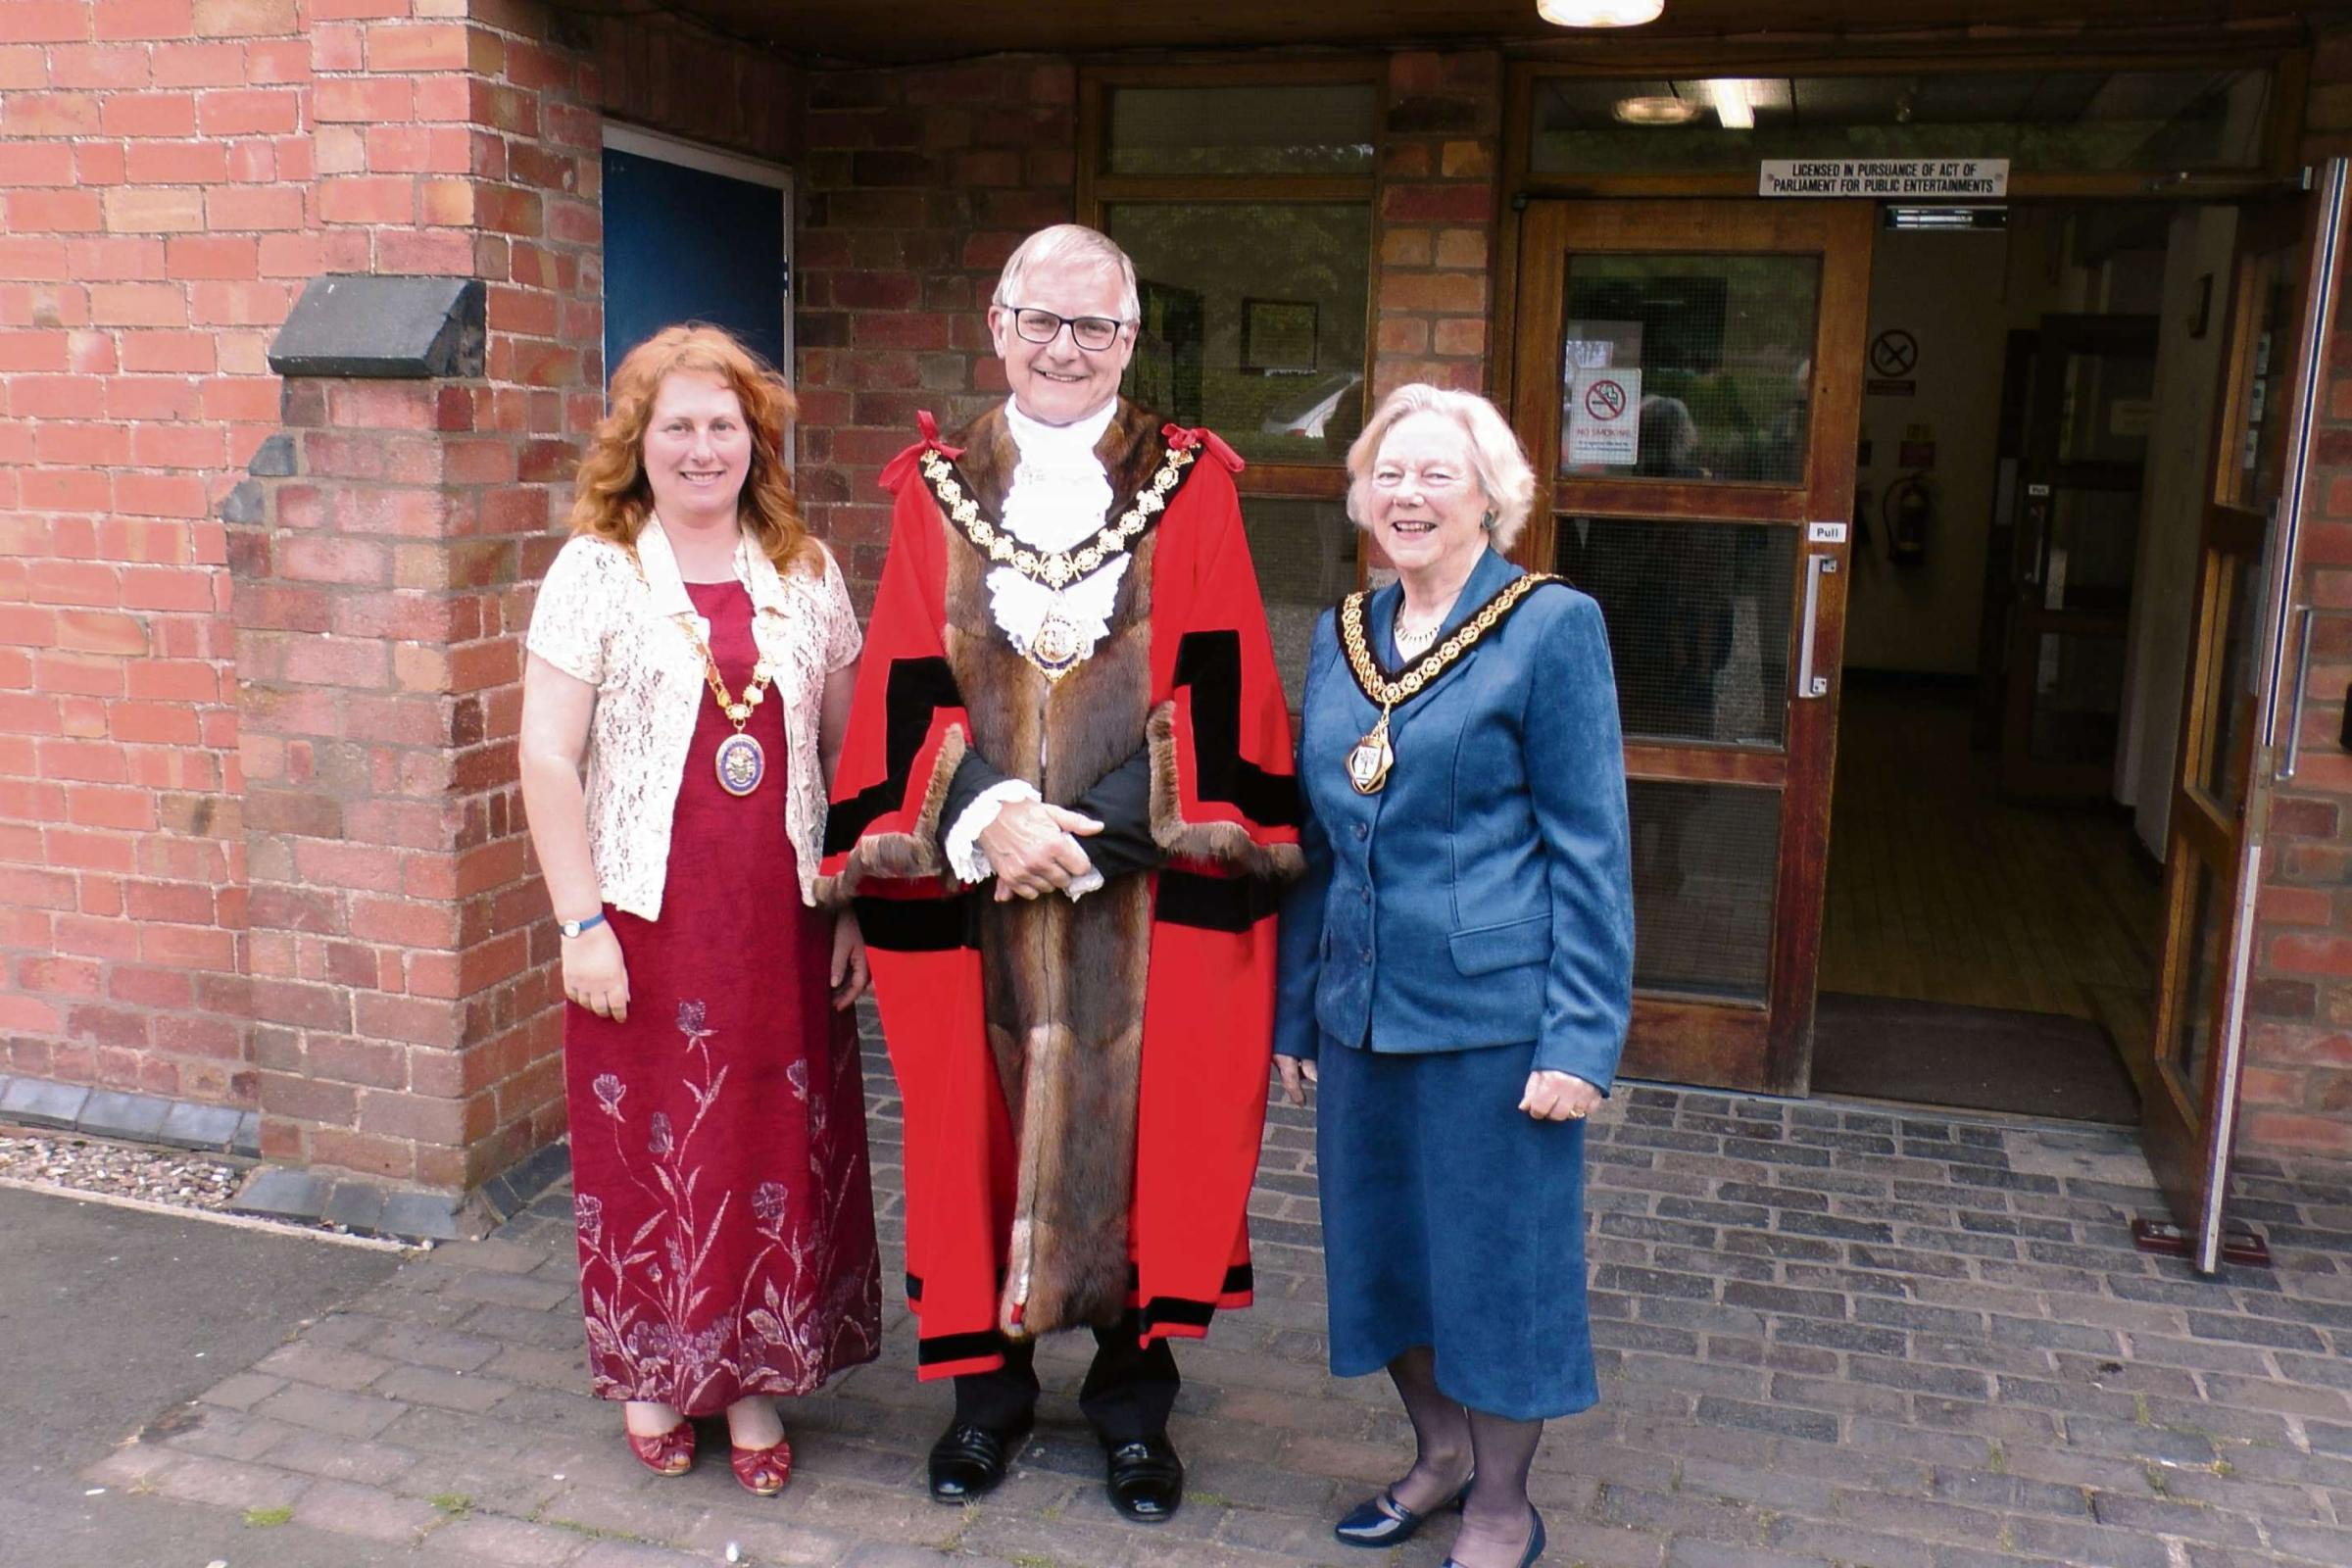 The new mayor of Droitwich Councillor Bob Brookes, with Councillor Lynne Duffy, chairman of Wychavon District Council, and Councillor Pam Davey, chairman of Worcestershire County Council. SP